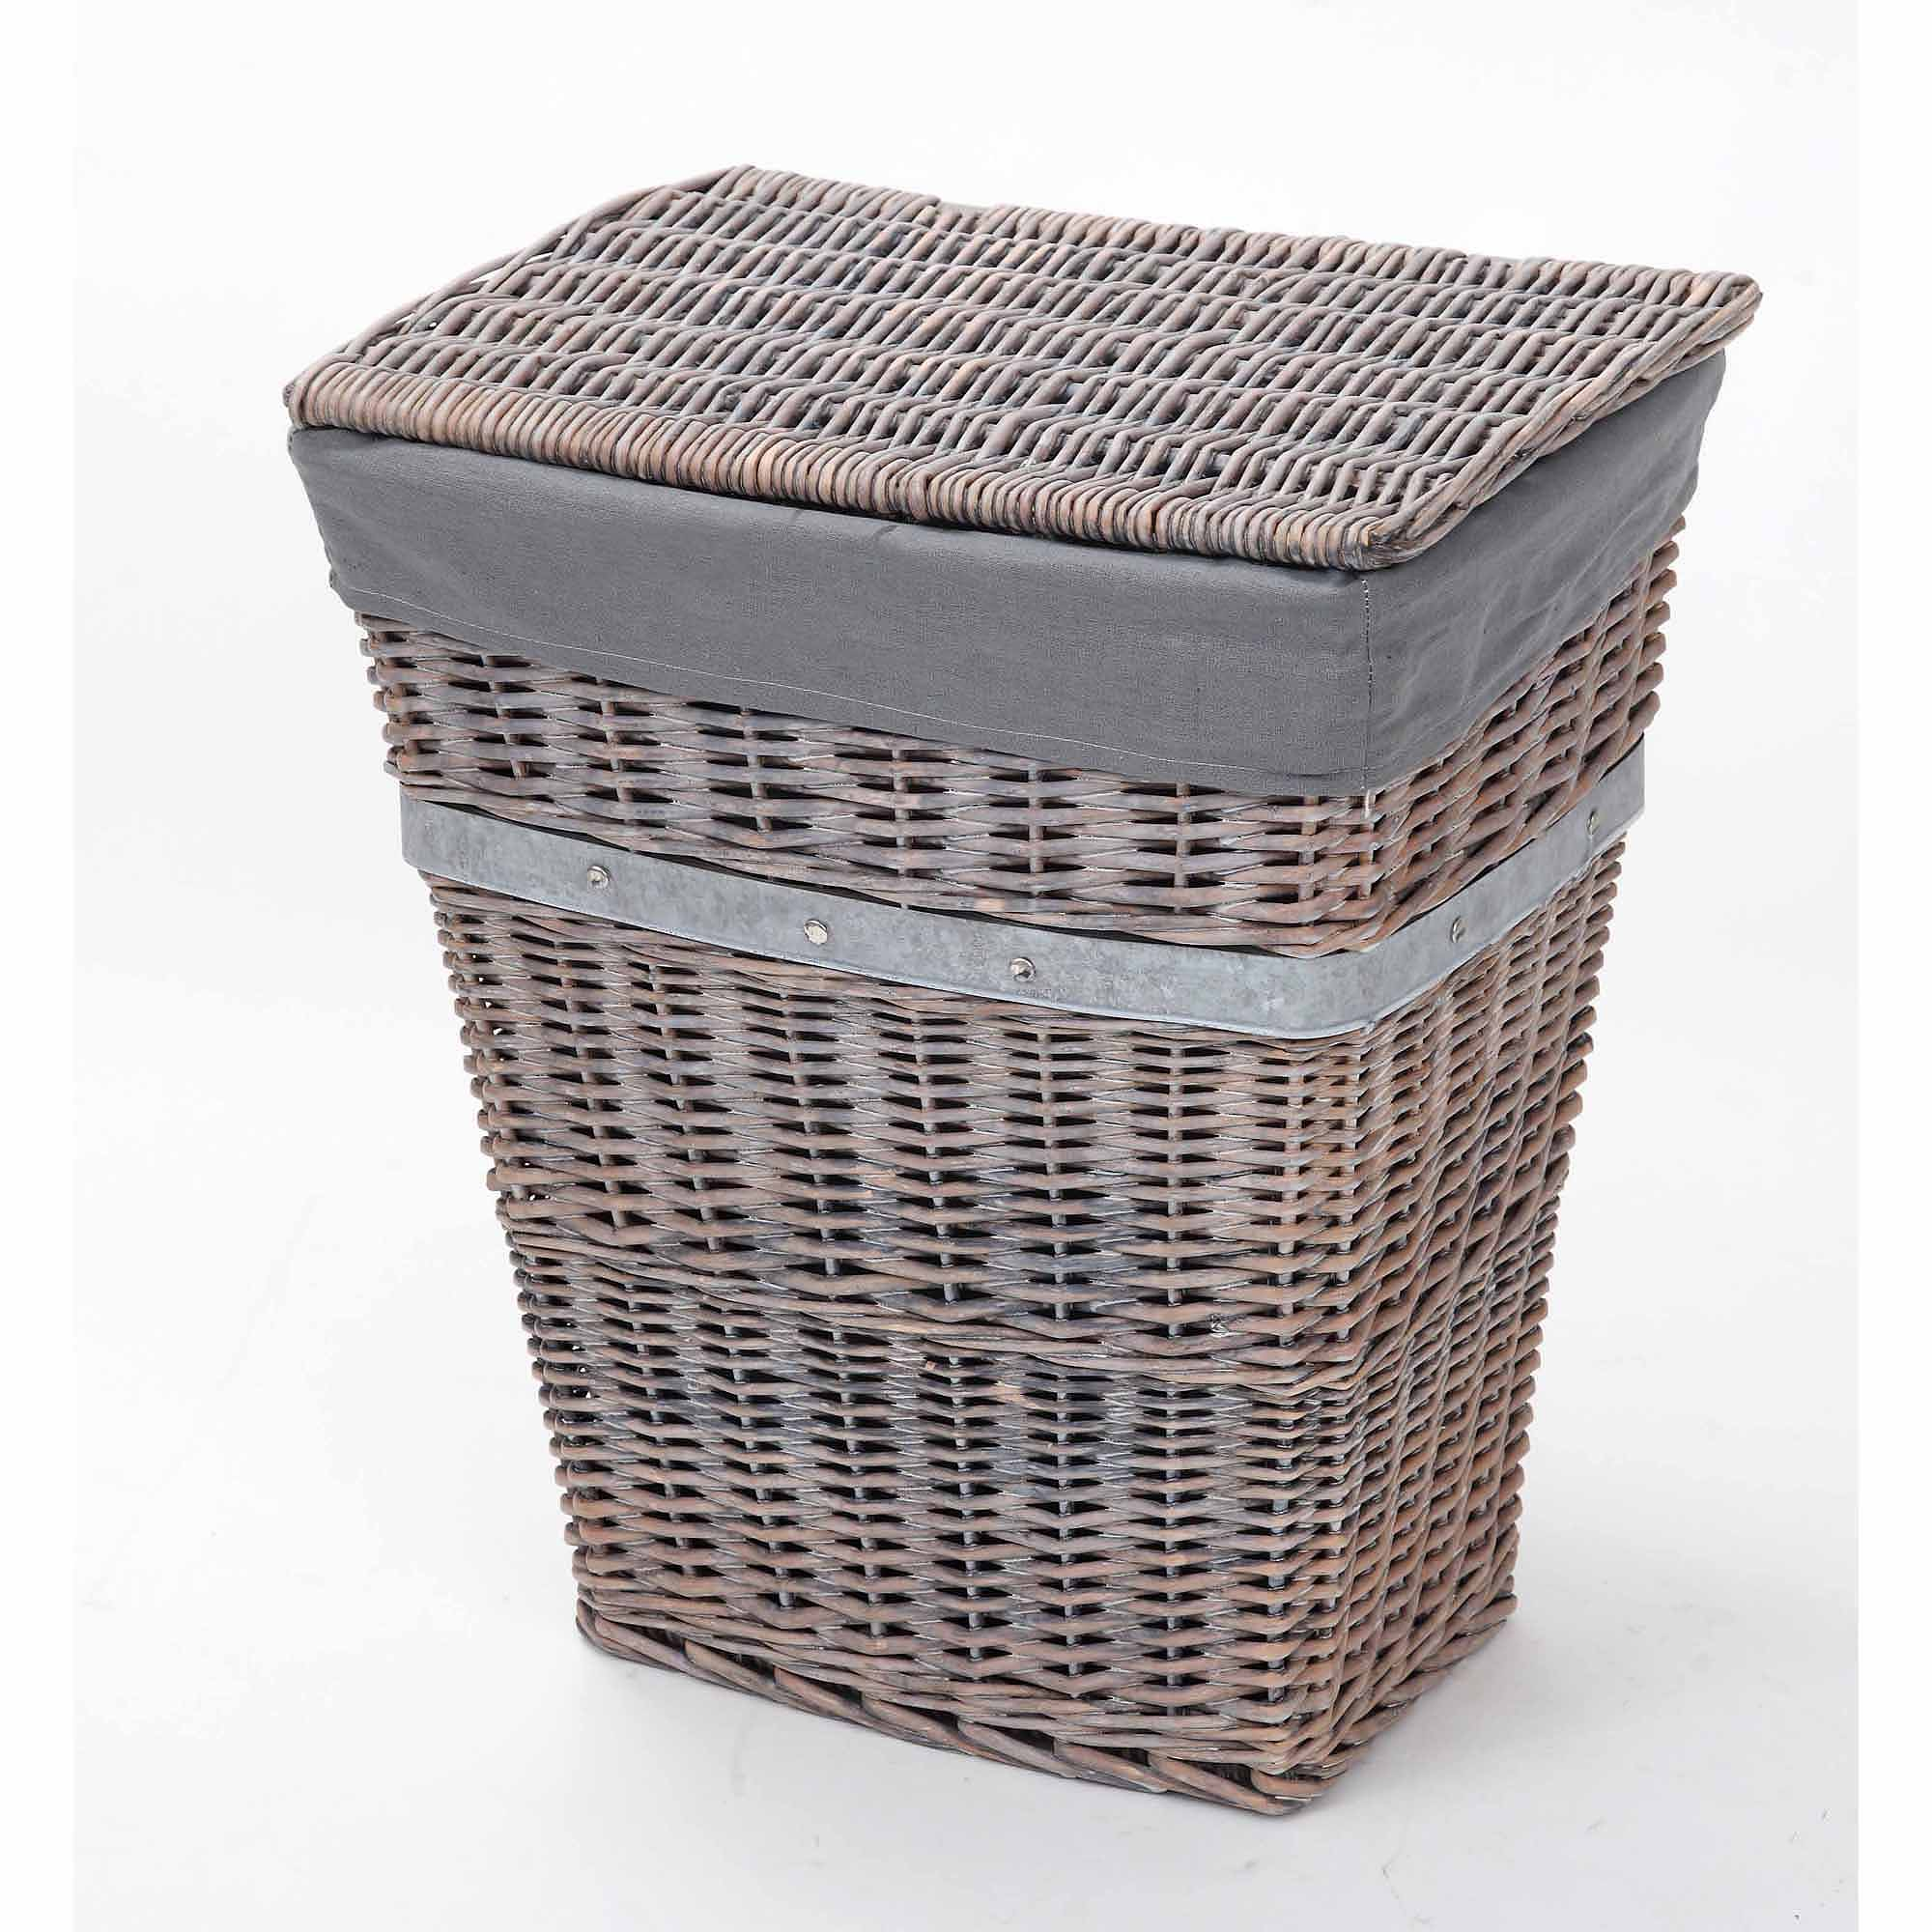 Better Homes and Gardens Wicker Hamper, Grey